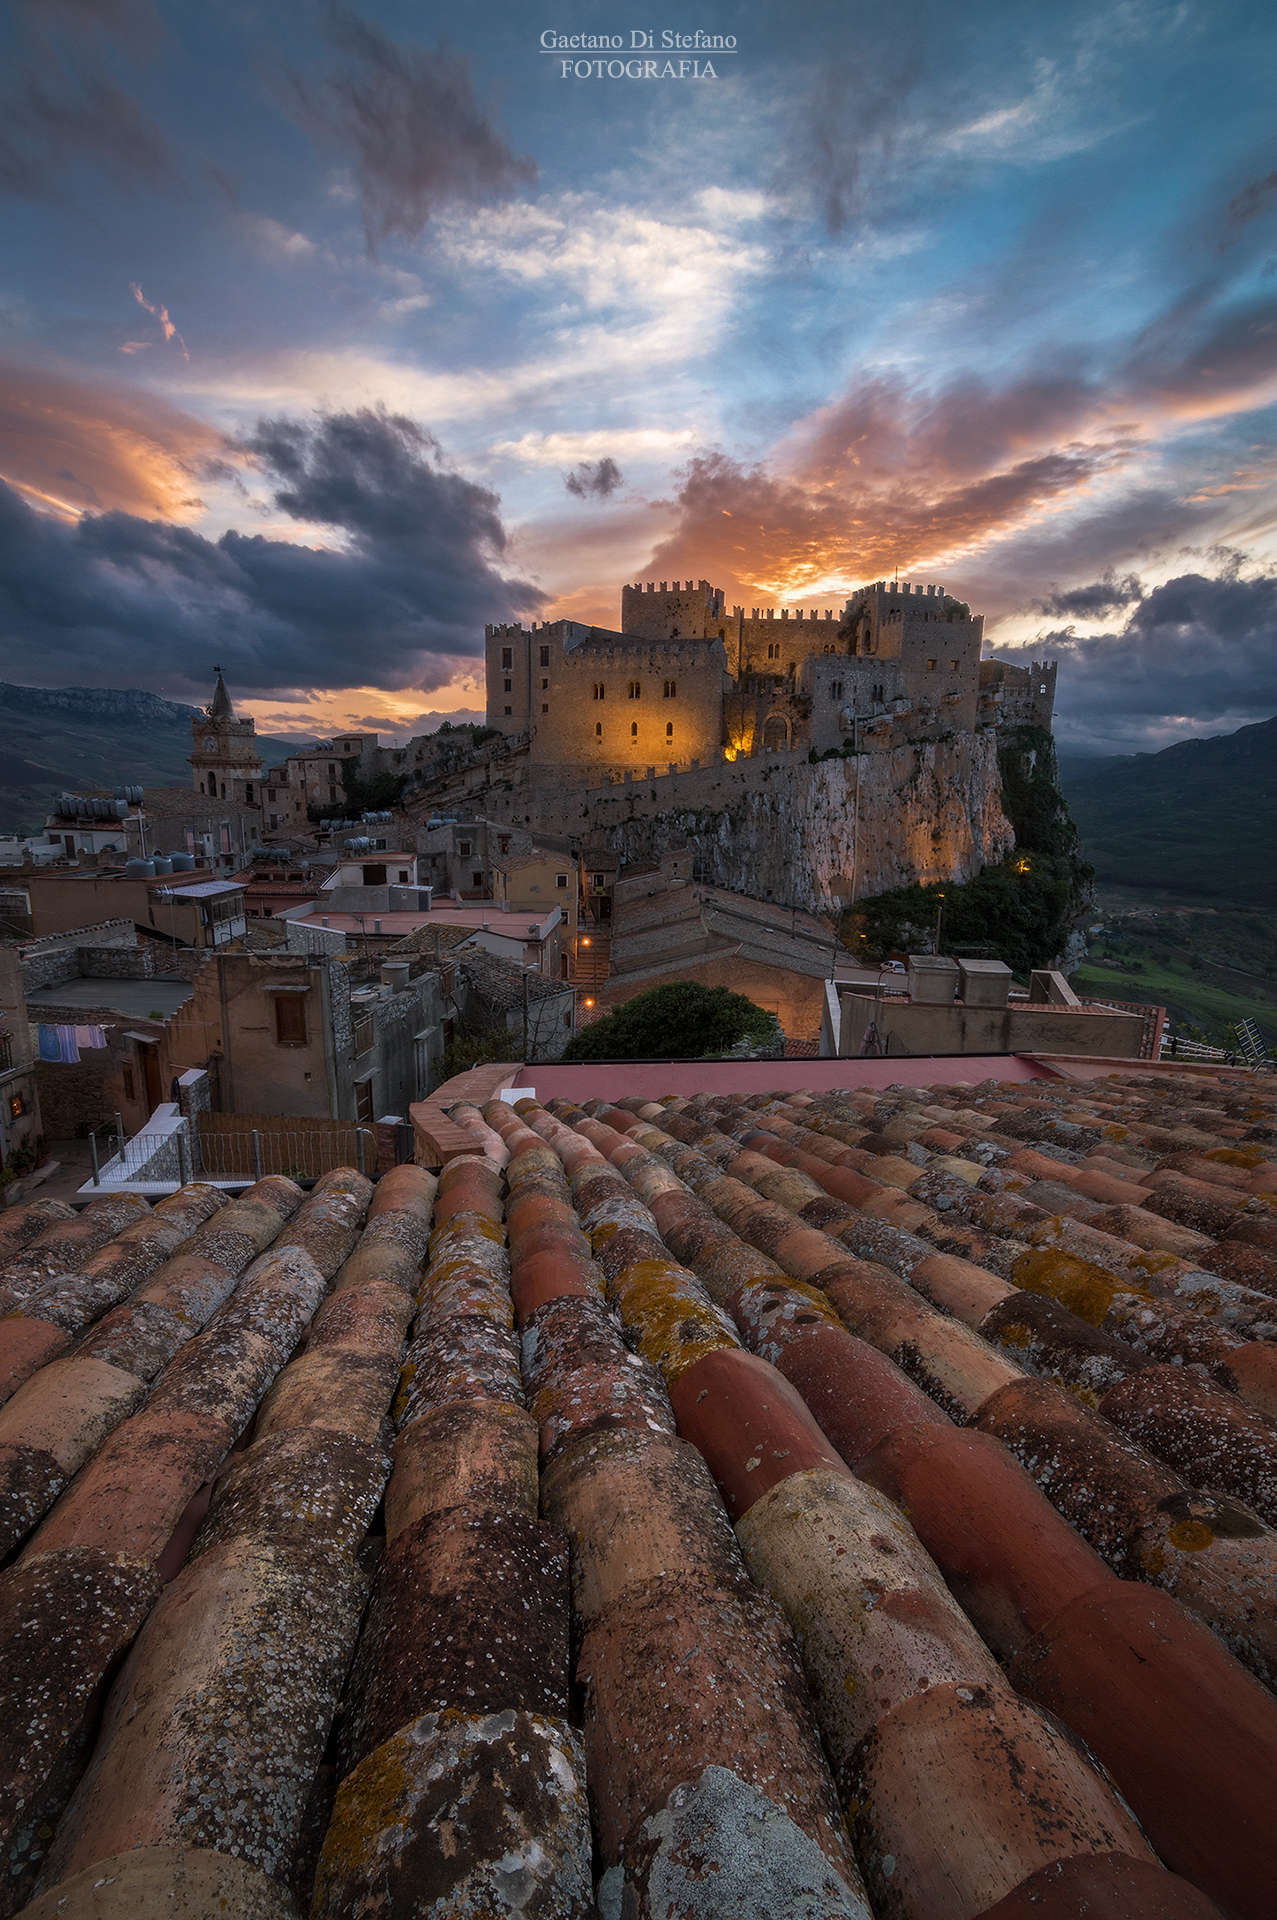 Sunset at the castle...